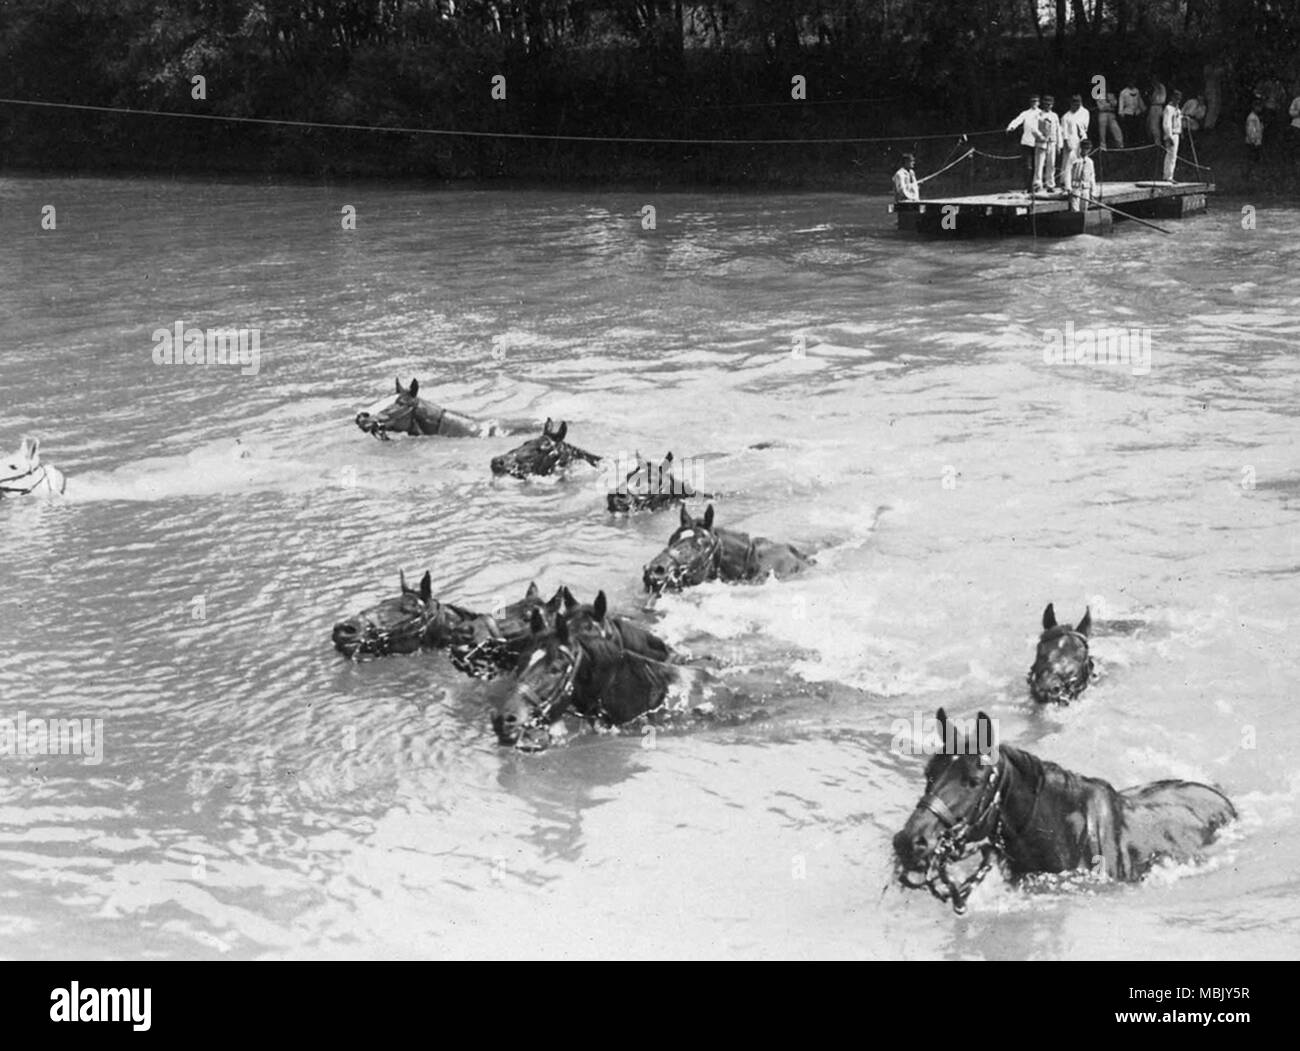 Swimming French Cavalry - Stock Image